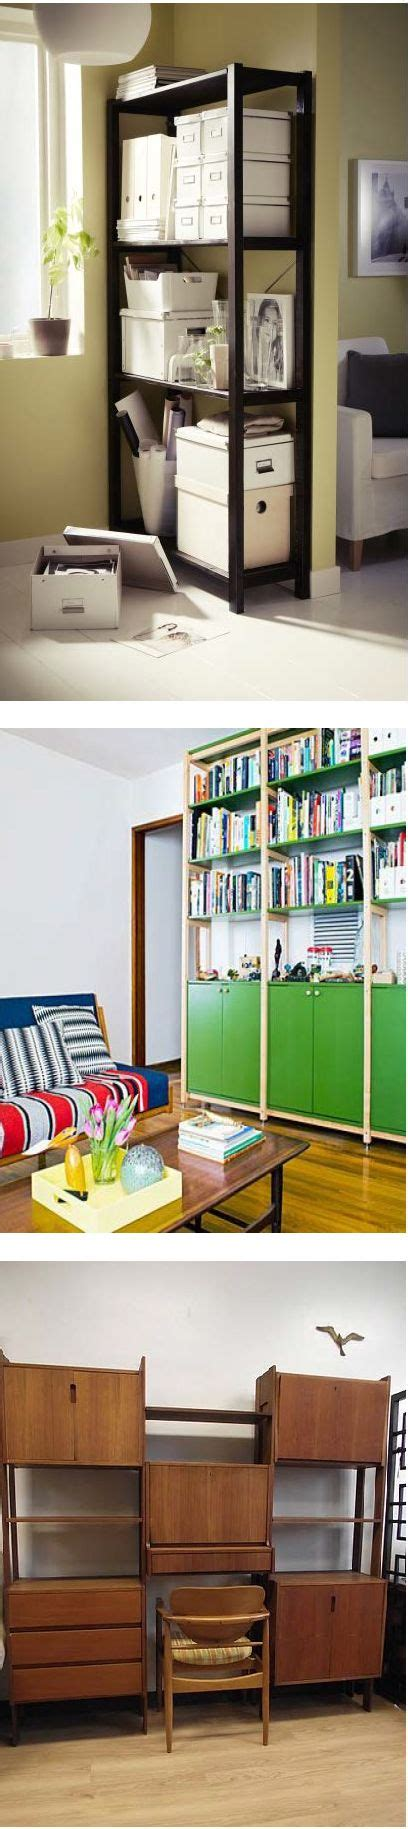 inventive ways to use ikea s ivar all over the house 89 best ikea ivar images on pinterest